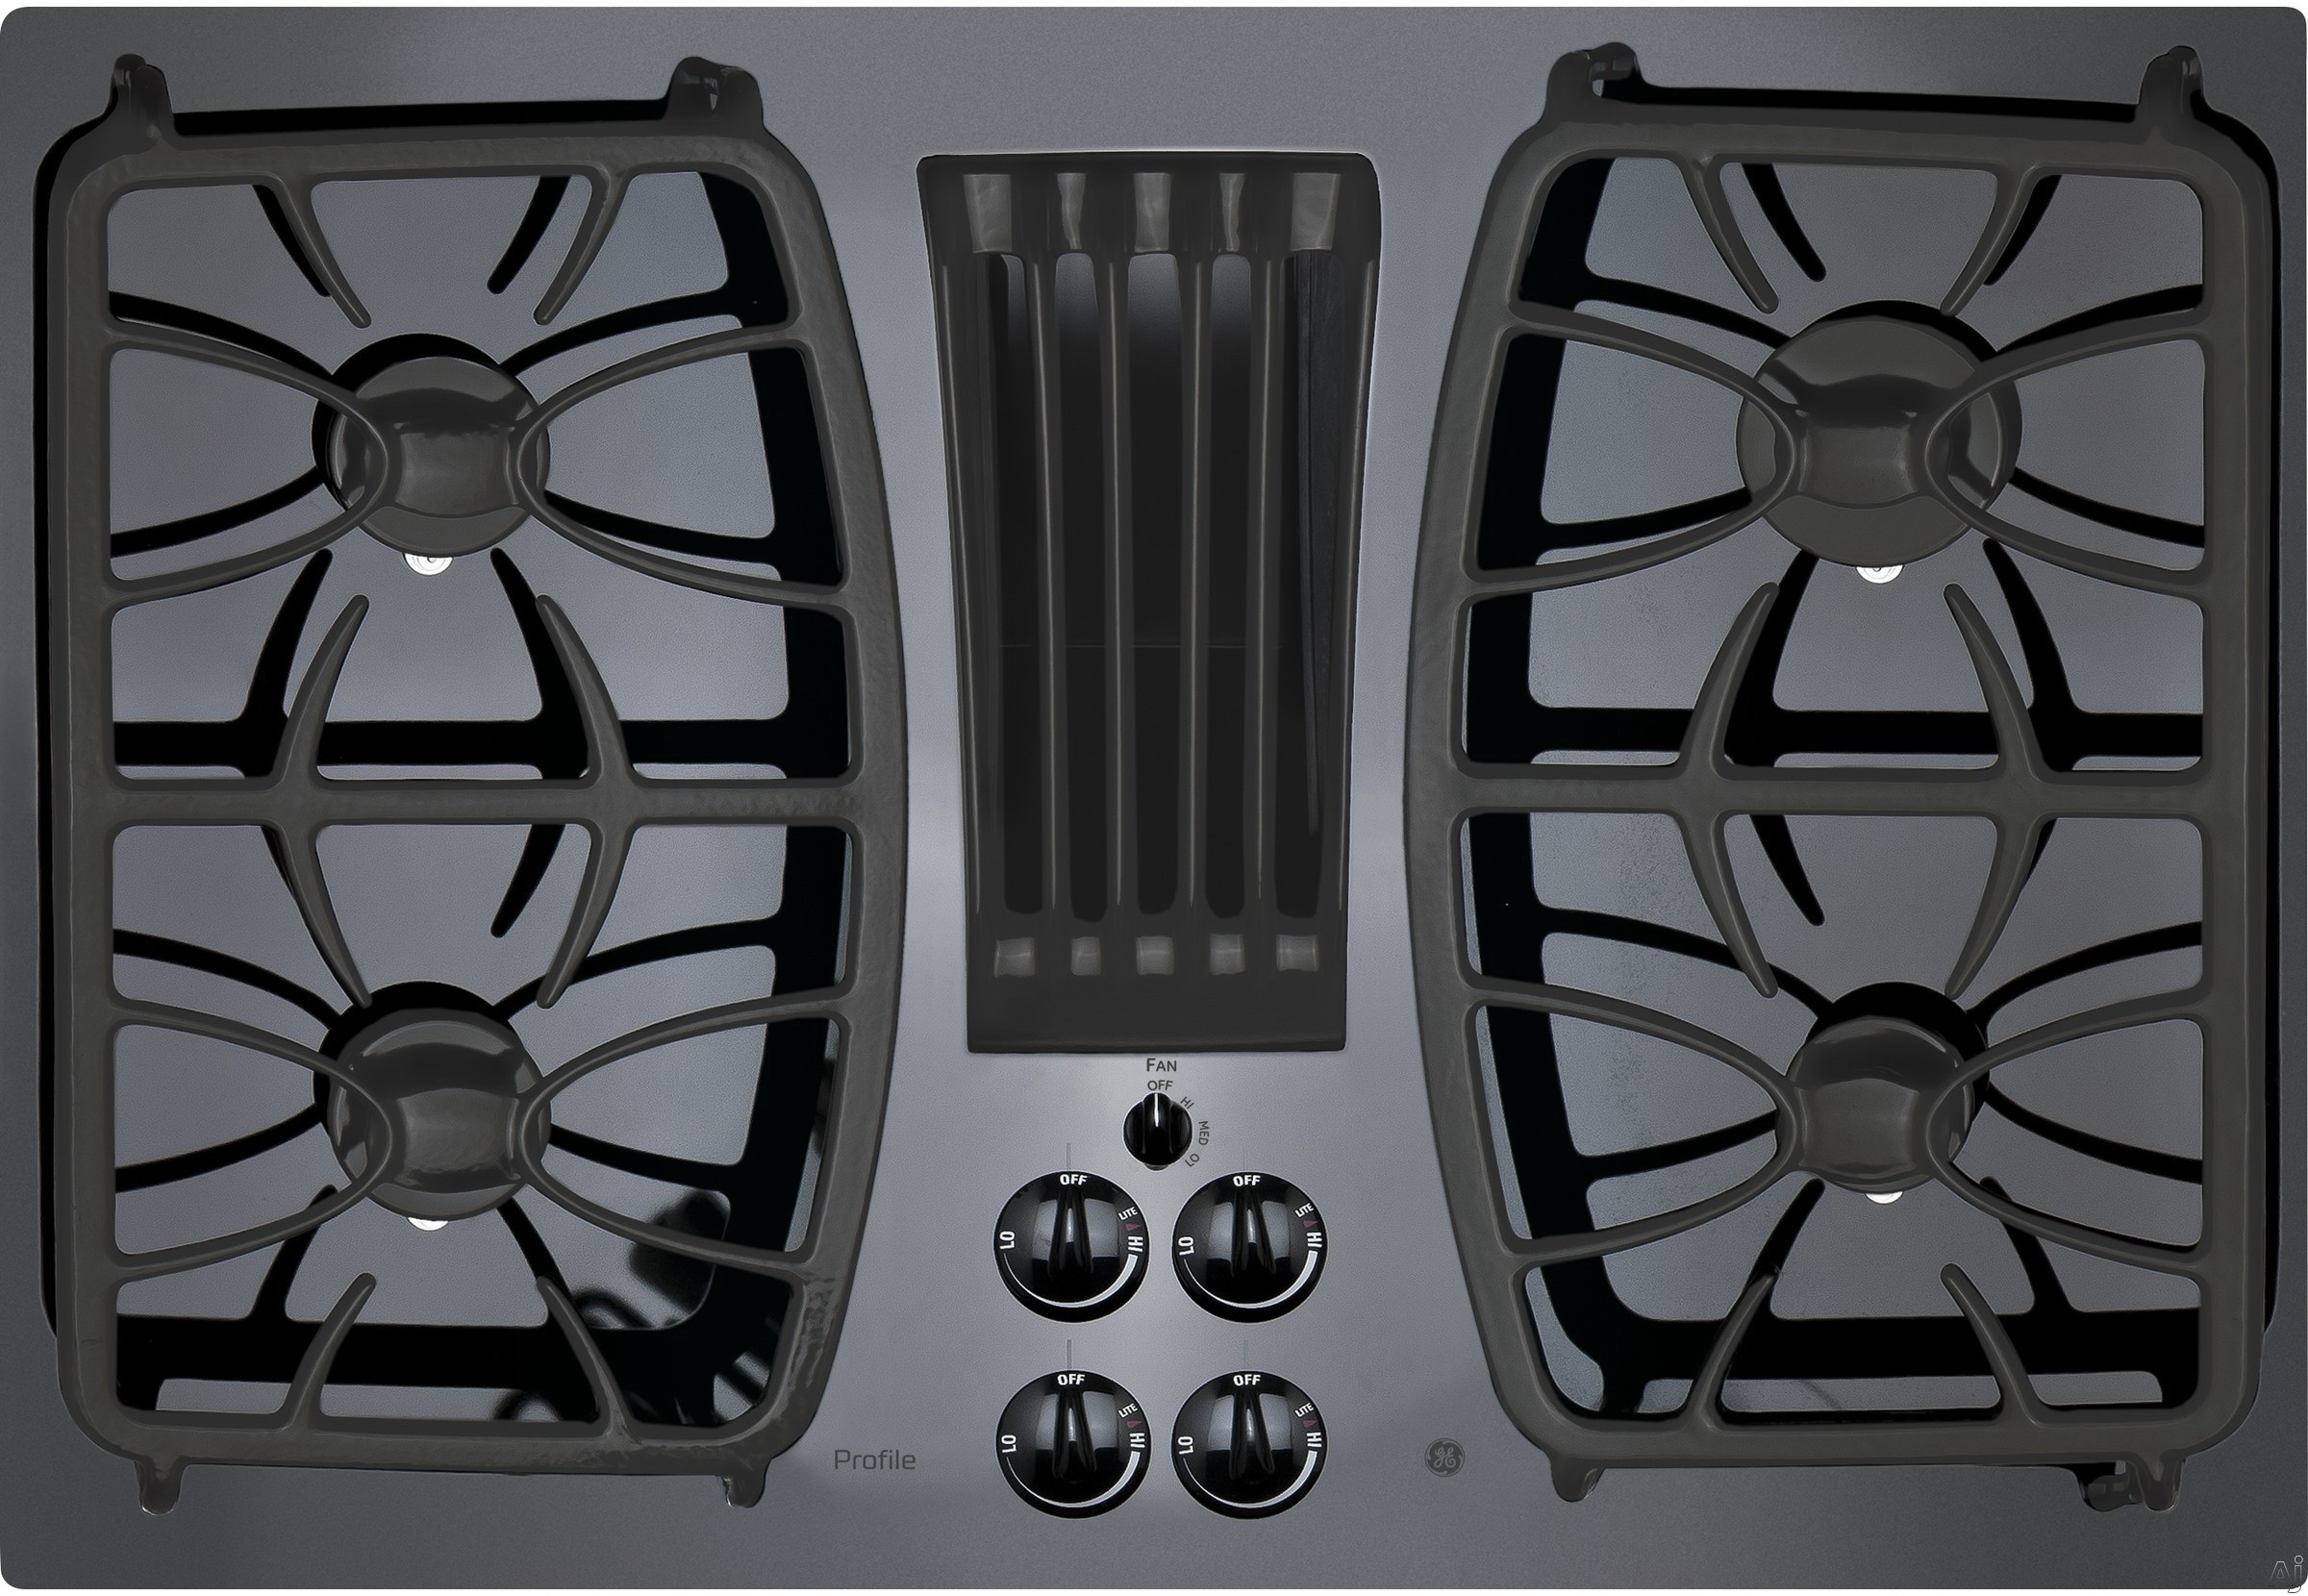 GE Profile PGP9830DJBB 30 Inch Gas Cooktop with 4 Sealed Burners, Downdraft Exhaust System, Glass-Cooktop Finish and Dishwasher-Safe Grates, Control Knobs, GE Fits! Guarantee and ADA Compliant: Black